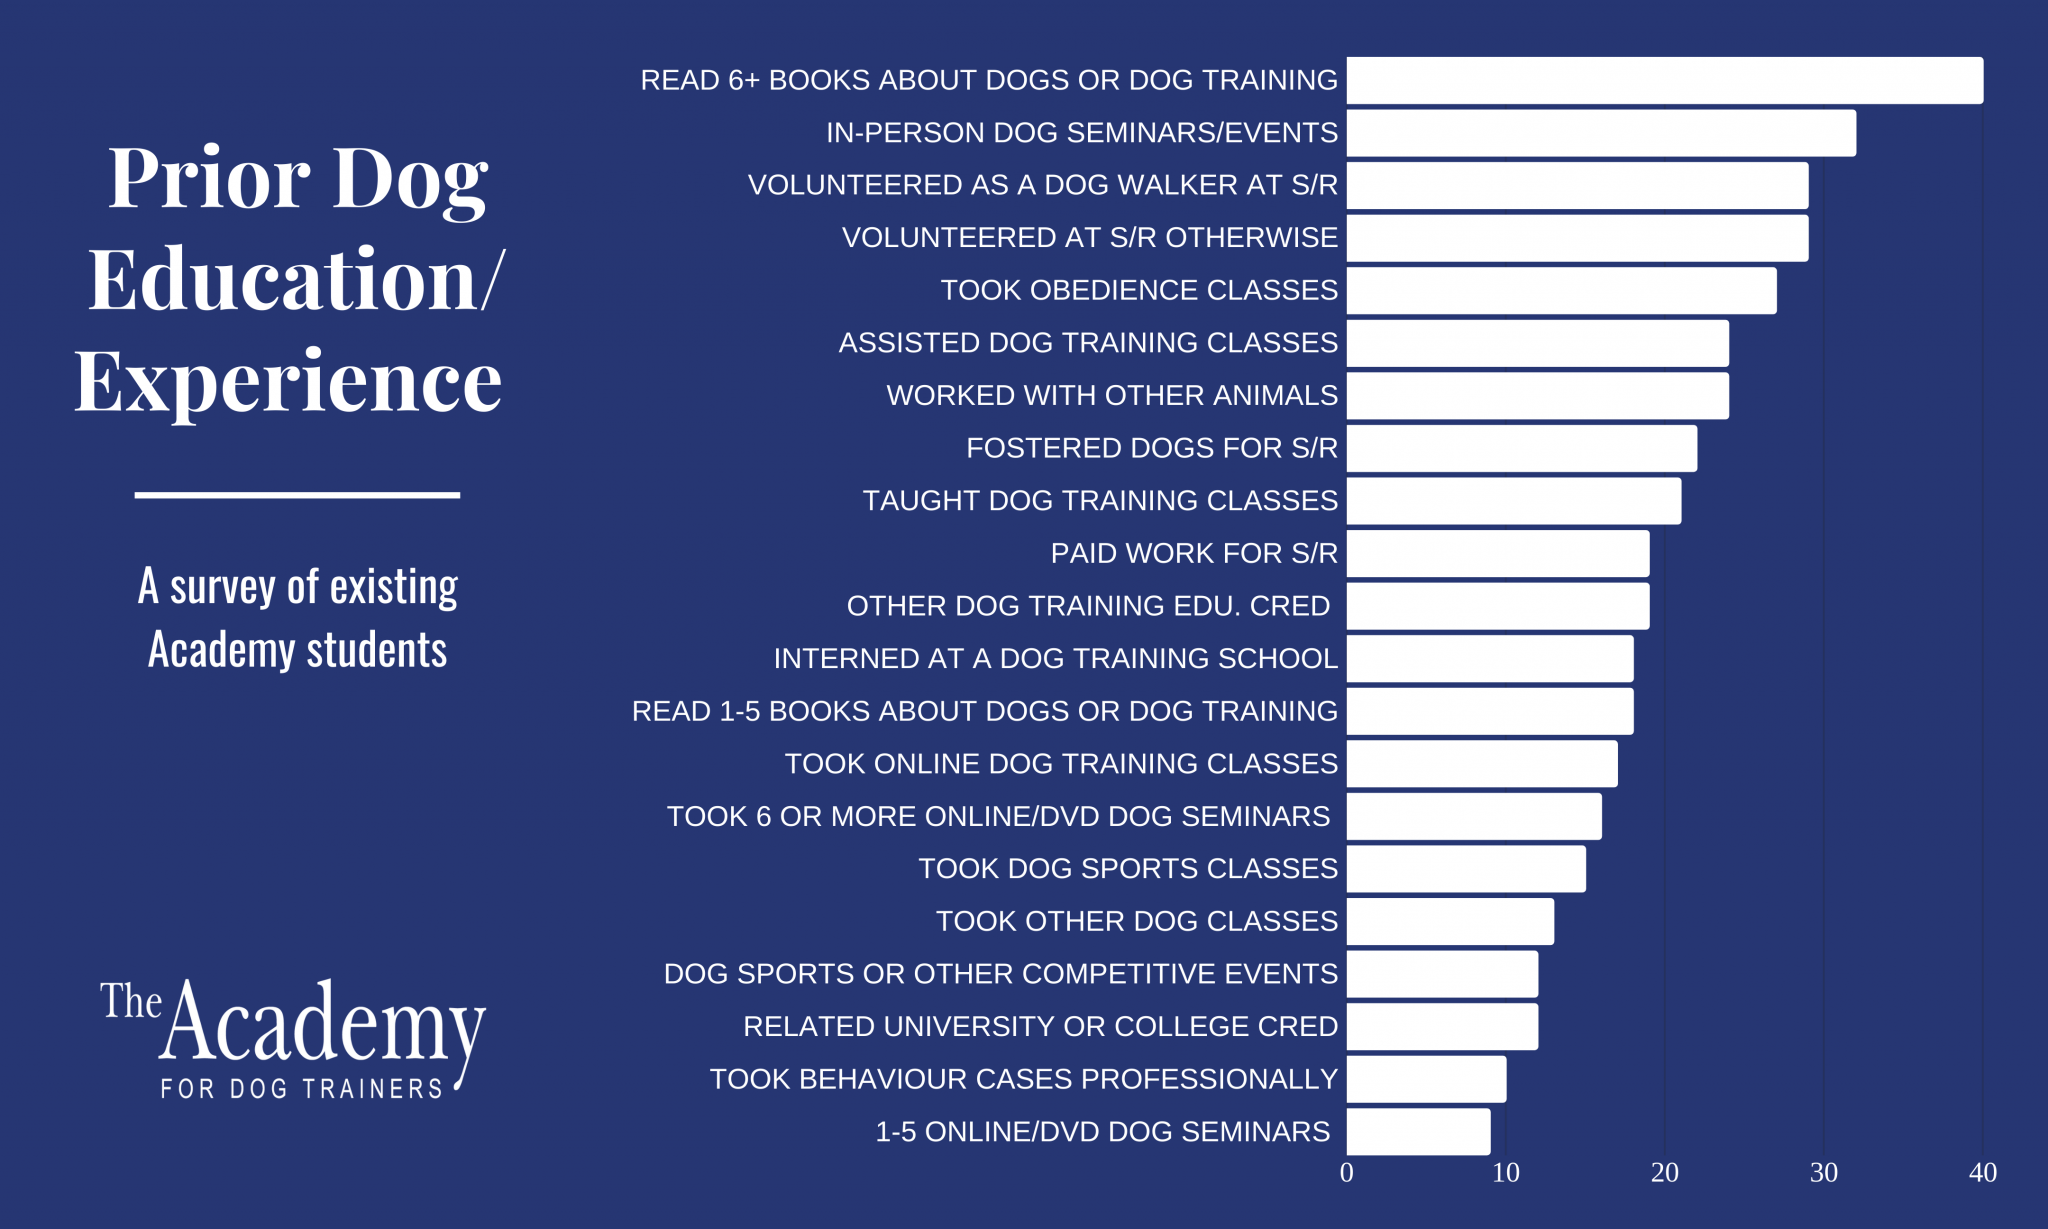 Chart showing dog trainers' education and experience